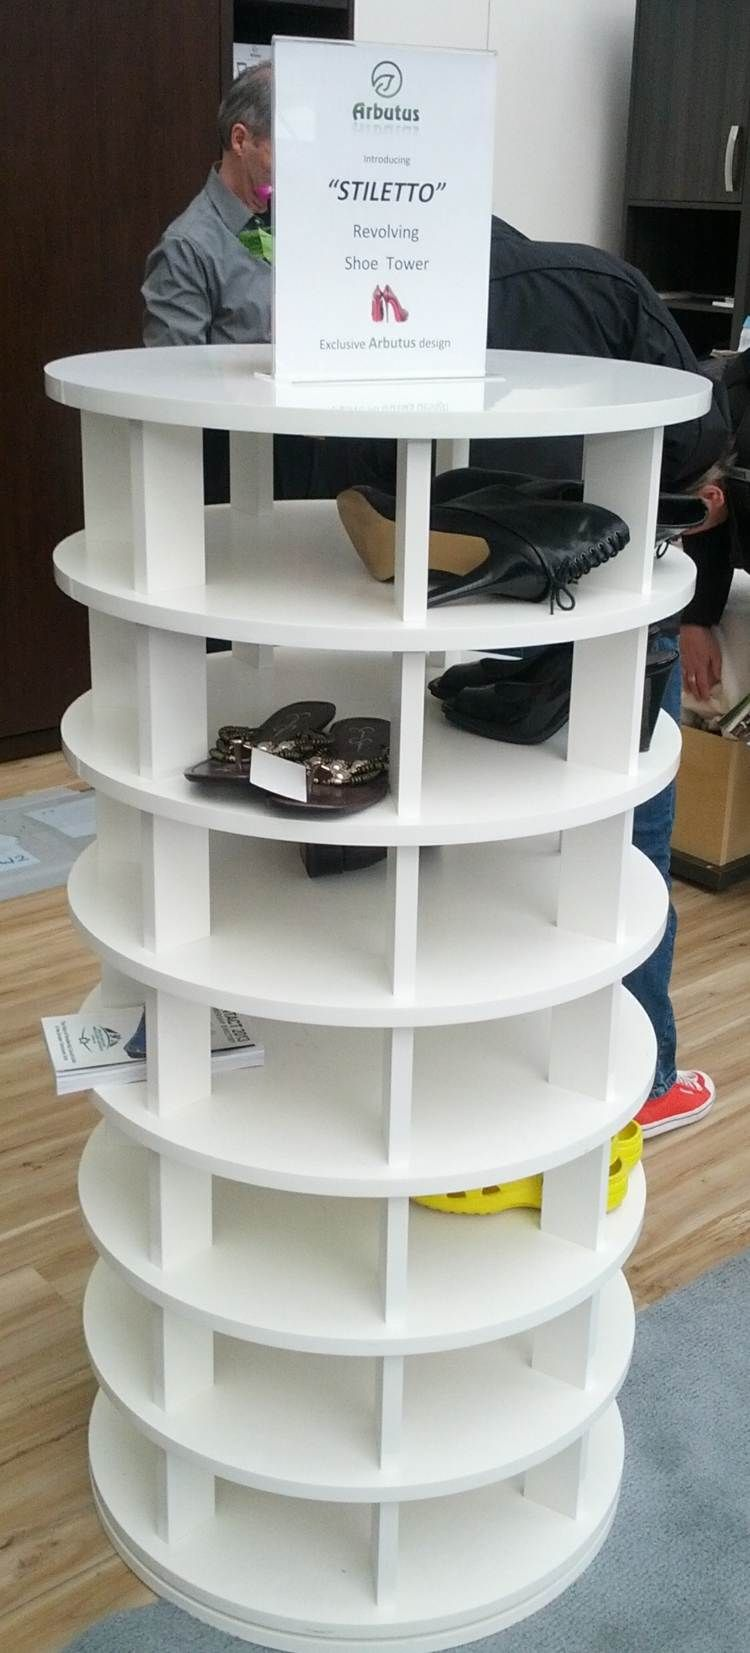 Schuhregal Selber Bauen Die Muster Ideas For The House Shoe Rack